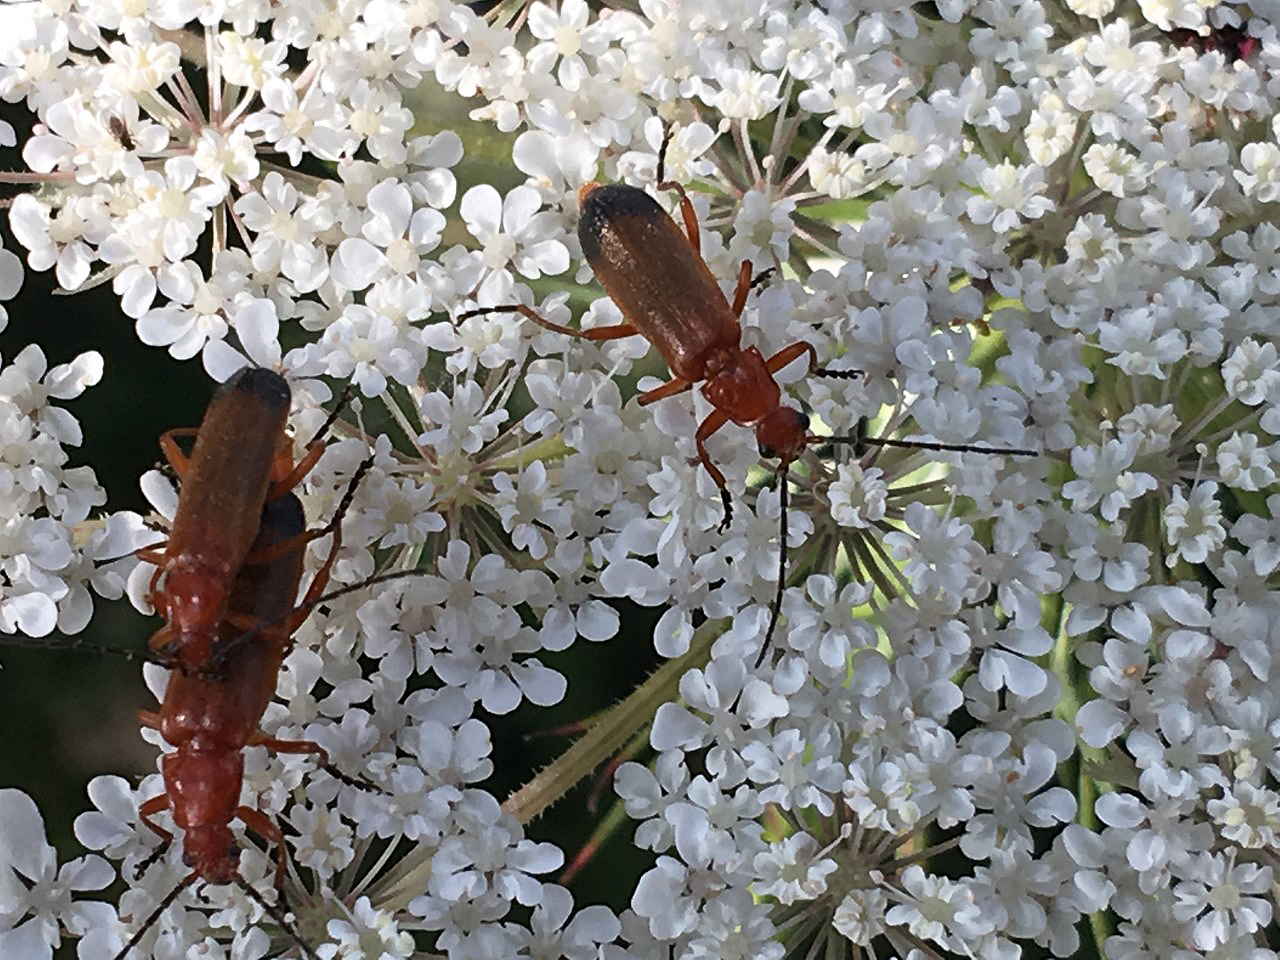 Common Red Soldier Beetles, often seen on umbelifer flowers